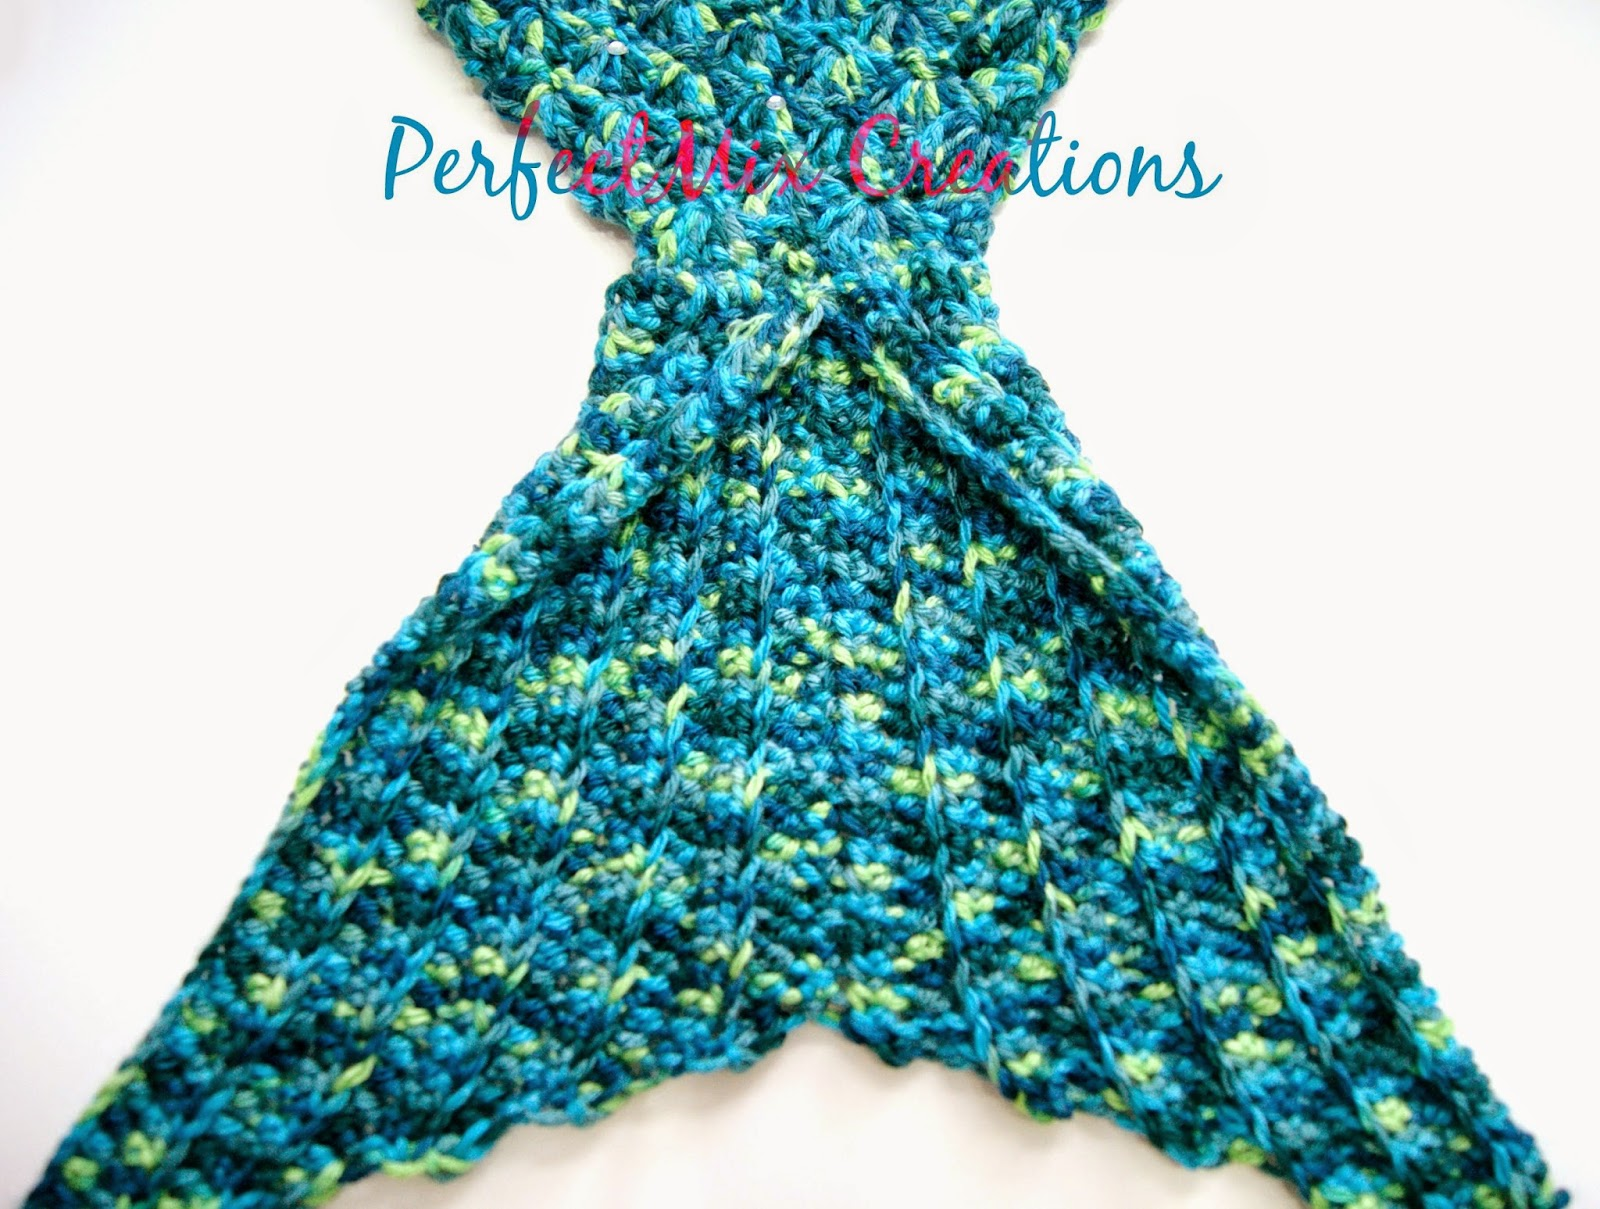 Mermaid Afghan Knitting Pattern Free : Mixin it up with DaPerfectMix: Crochet Mermaid Tail Fin ...